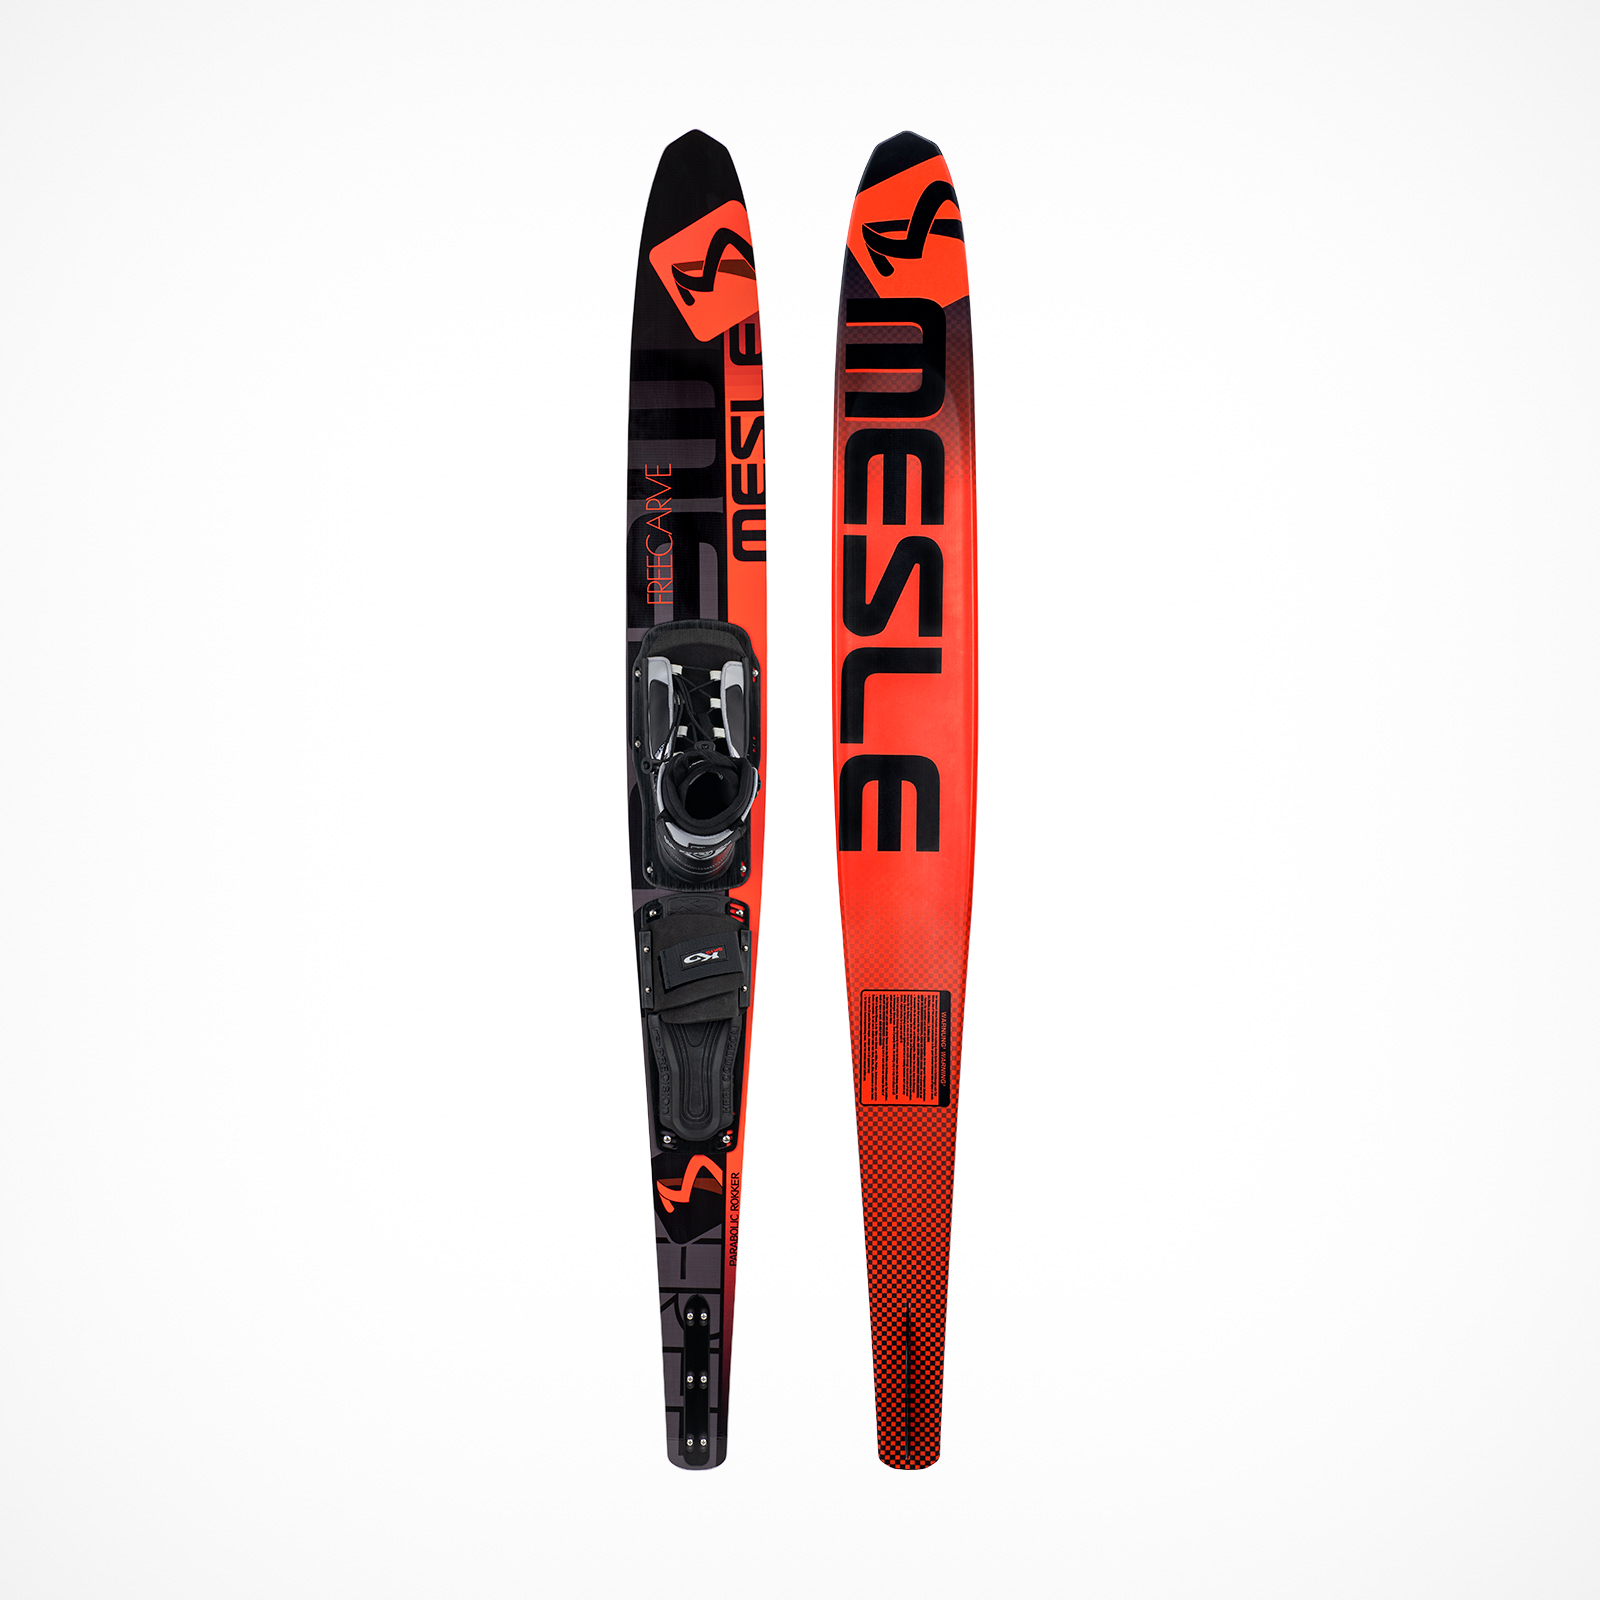 MESLE Slalomski Freecarve red 65'', with Comp Binding, fr Hobby Skiers up to Pro Skiers, up to 75 kg, Lenght 165 cm